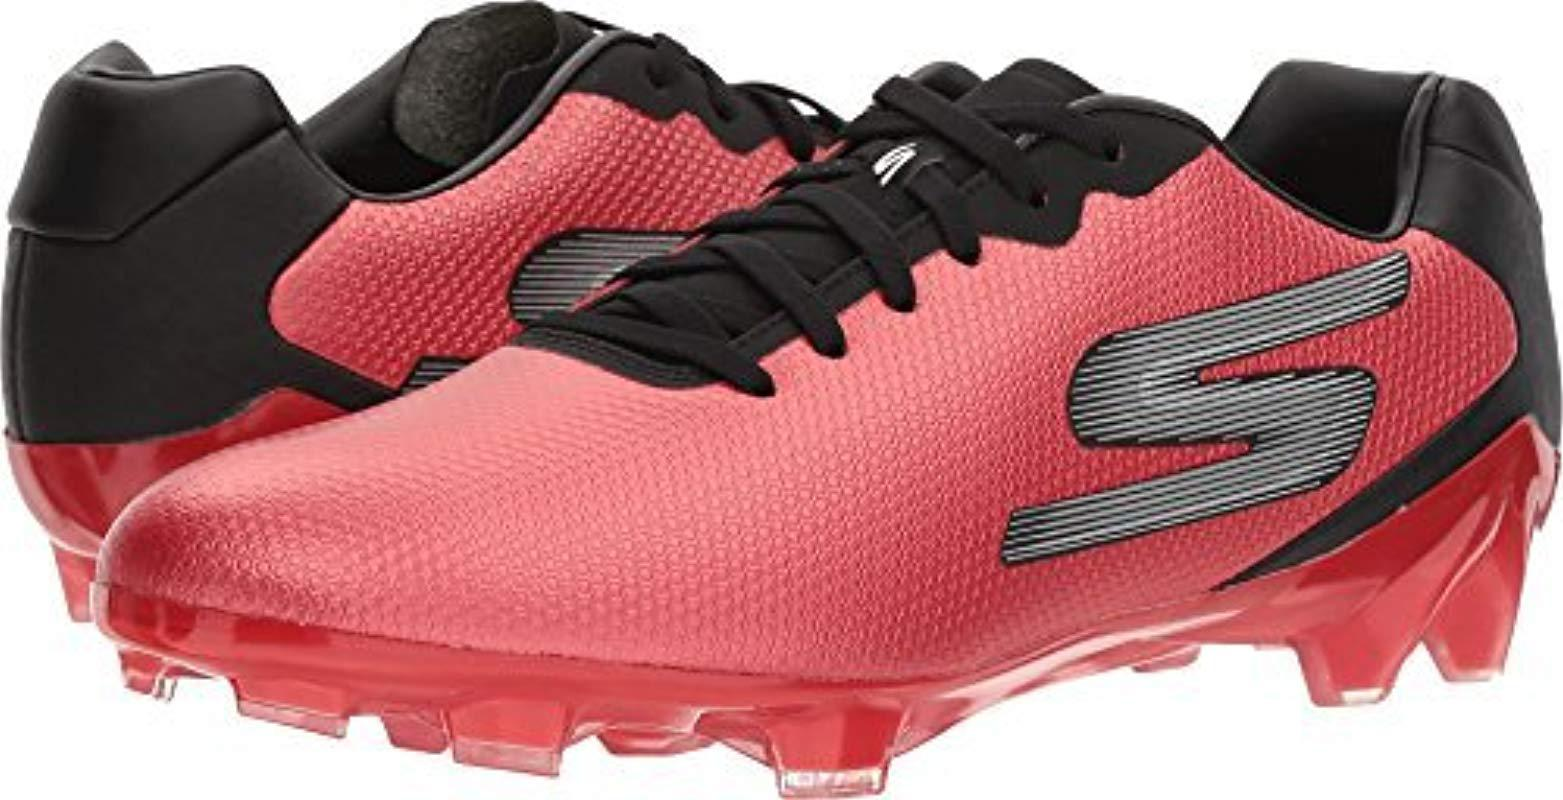 ef832055c960 Skechers Performance Go Galaxy Fg Soccer Cleat Shoe in Red for Men ...